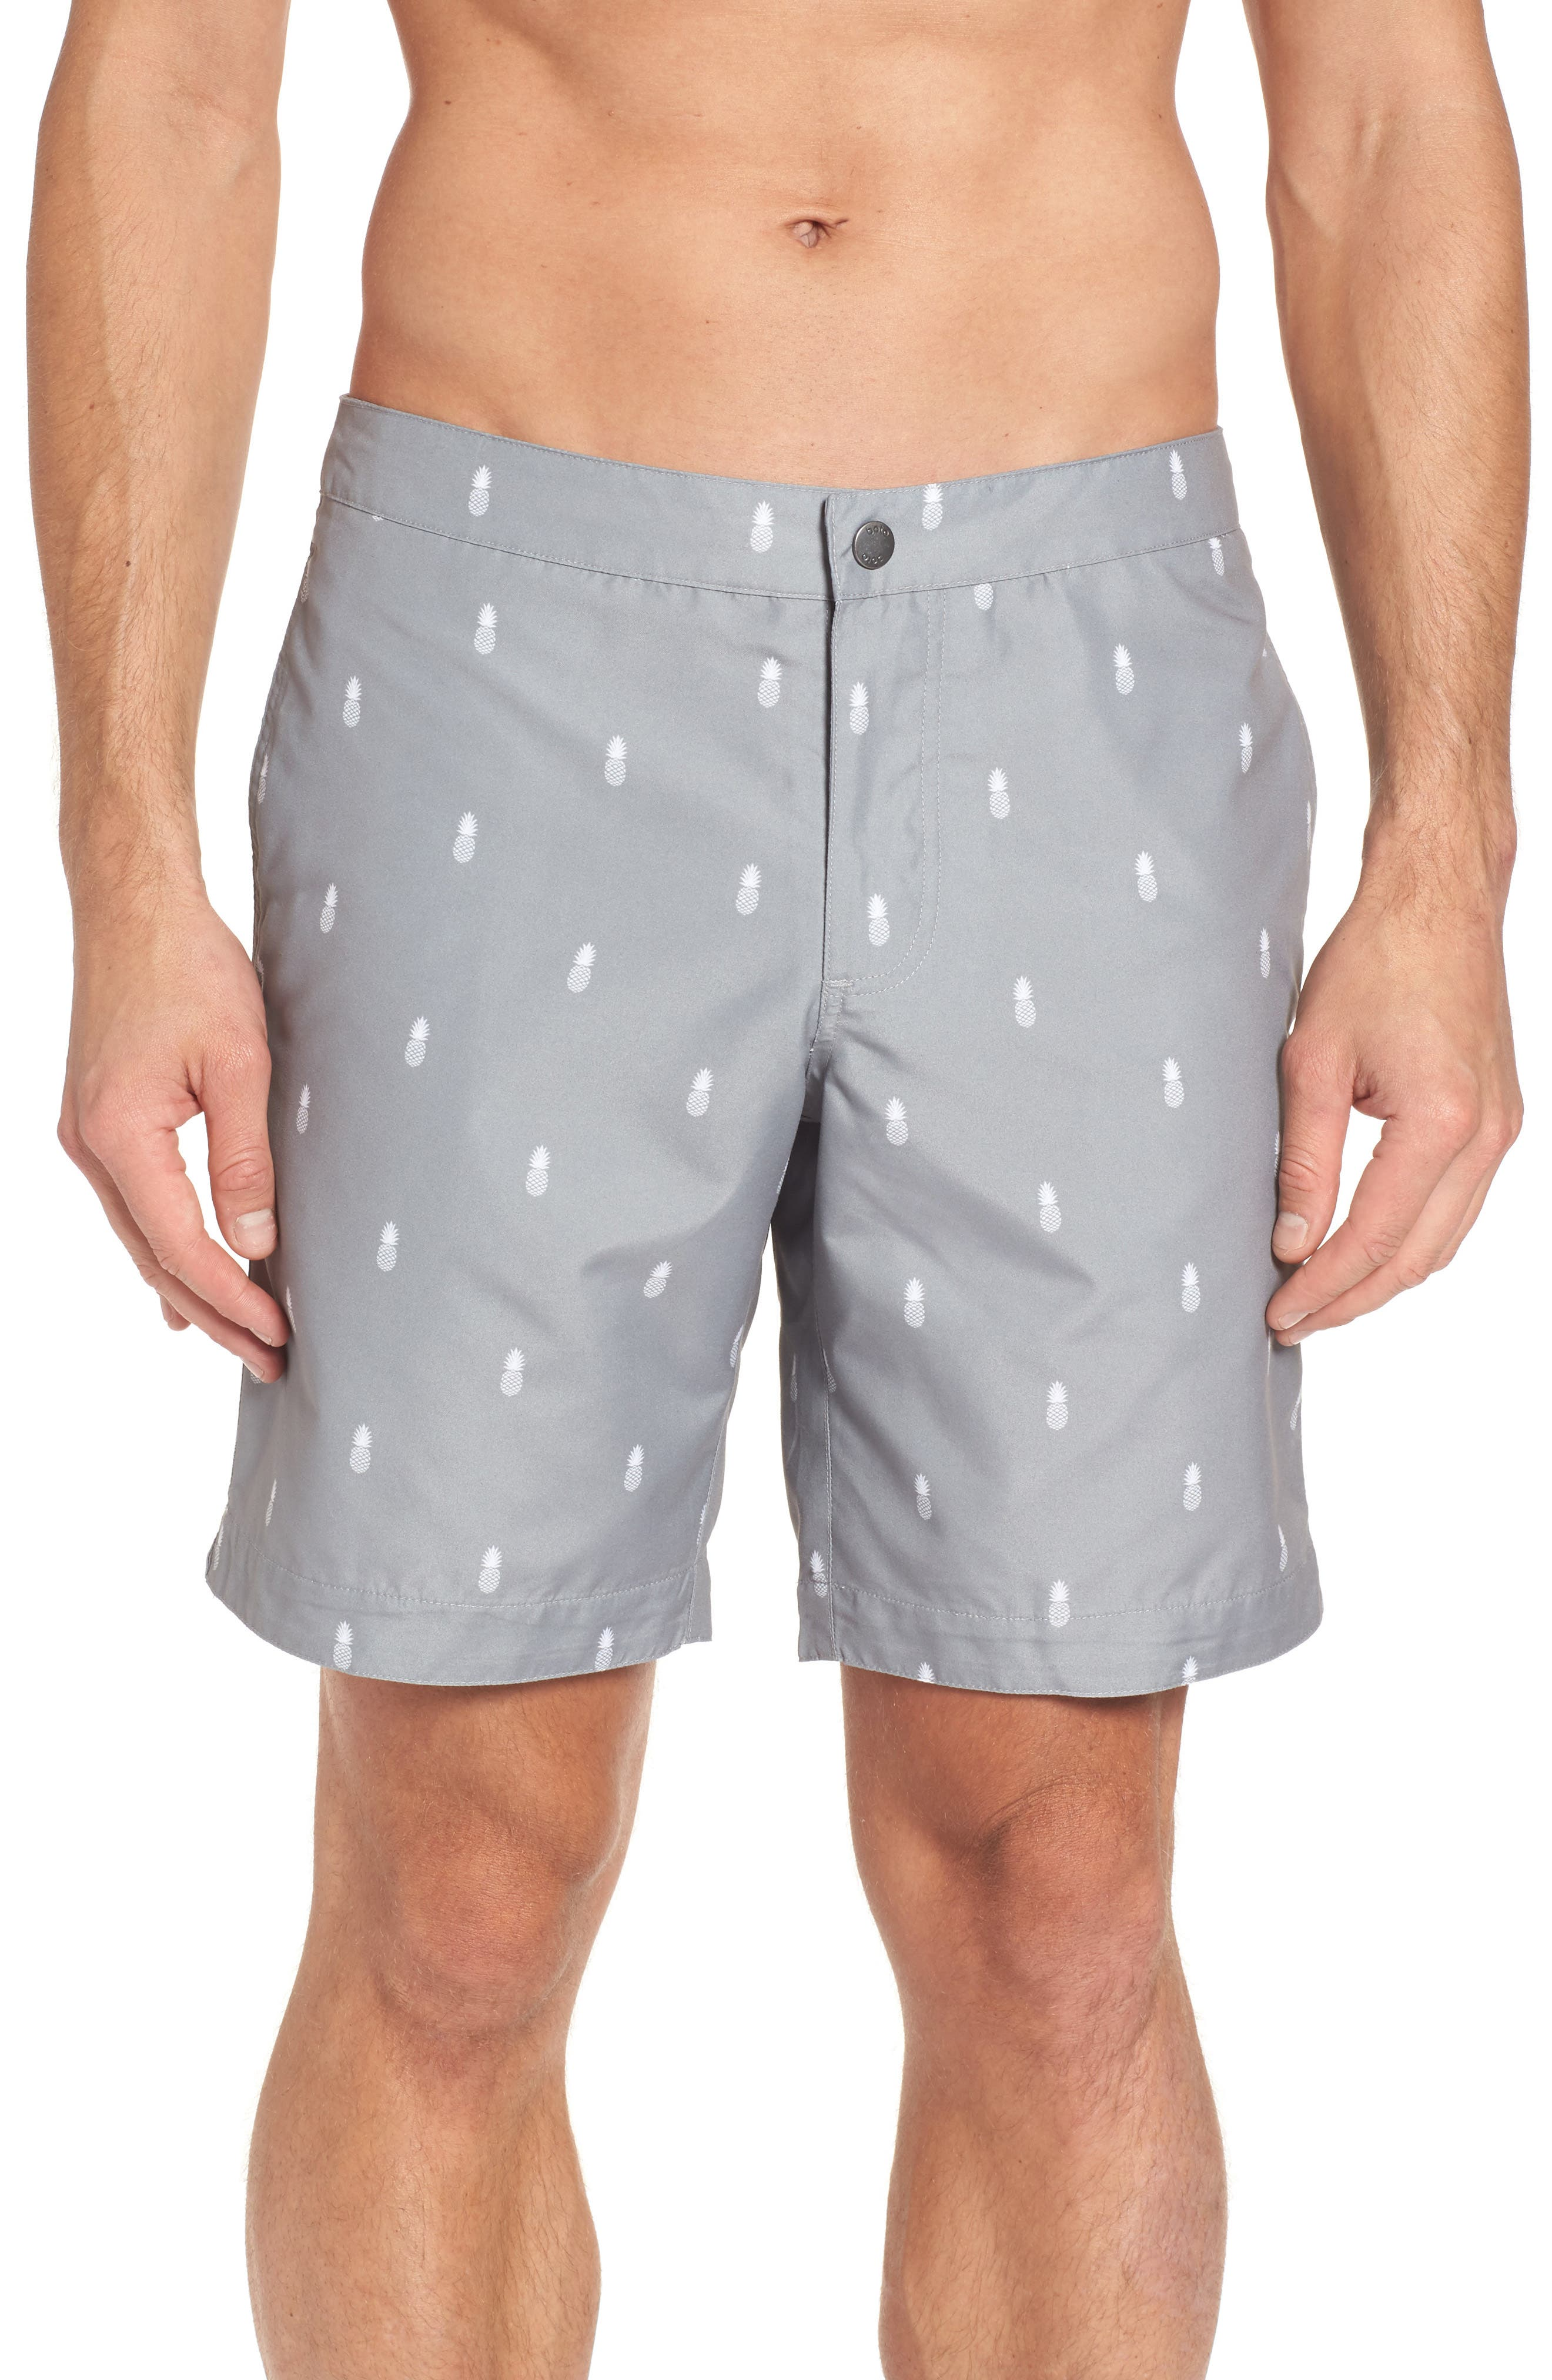 Aruba Tailored Fit Swim Trunks,                         Main,                         color, Grey Pineapple Print